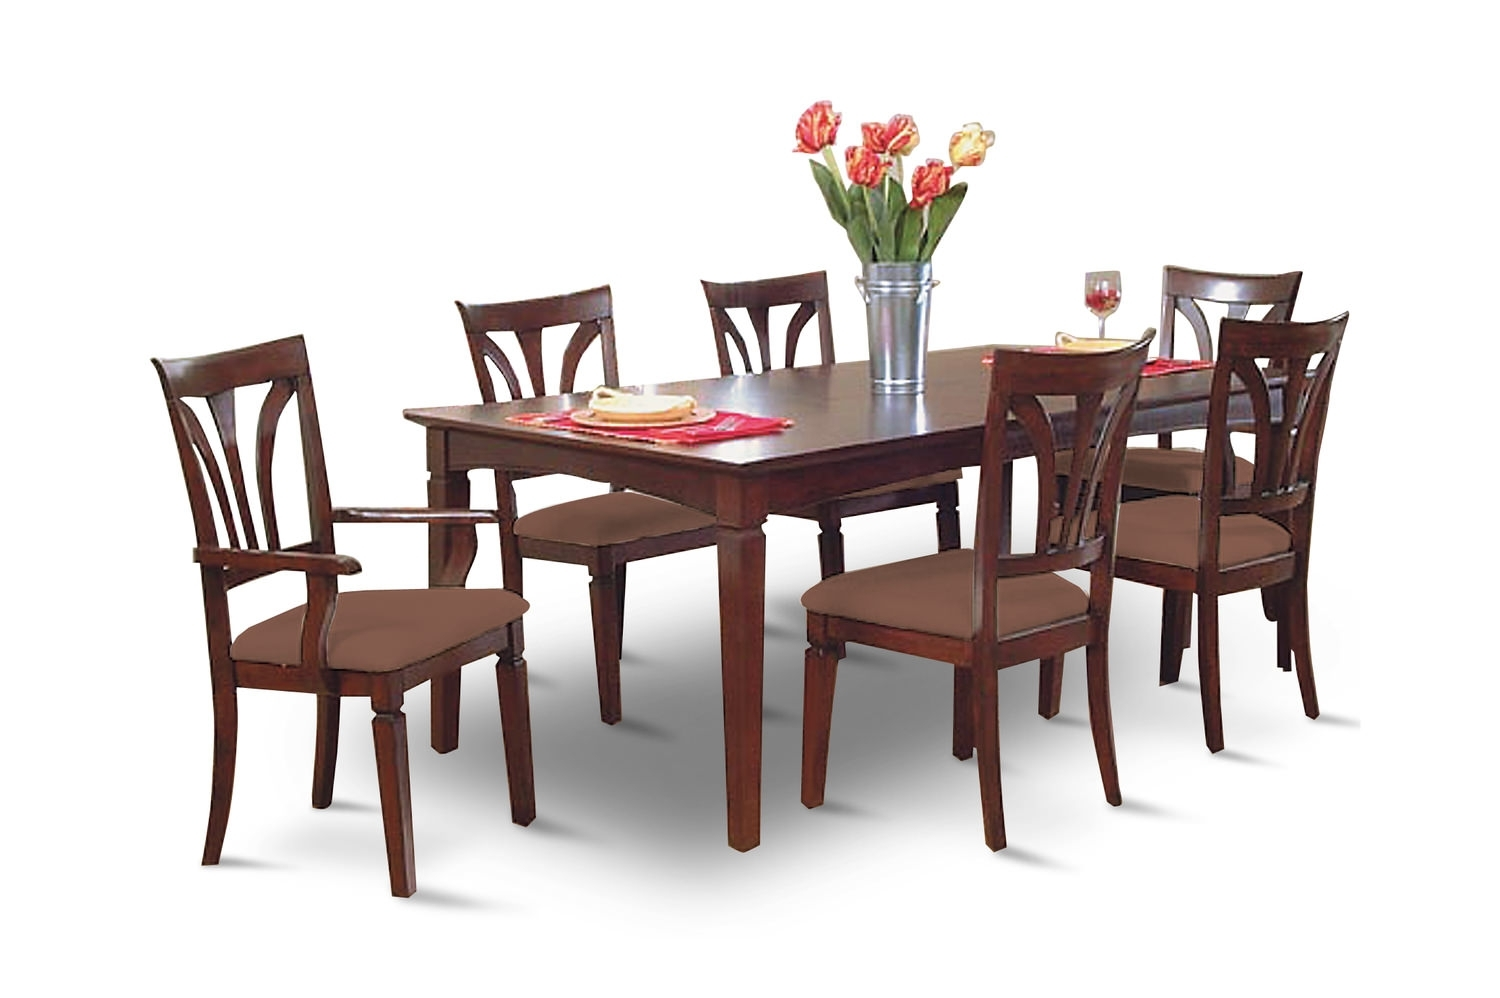 Dining Sets – Kitchen & Dining Room Sets – Hom Furniture Within Most Recent Chapleau Ii 9 Piece Extension Dining Tables With Side Chairs (Image 17 of 20)